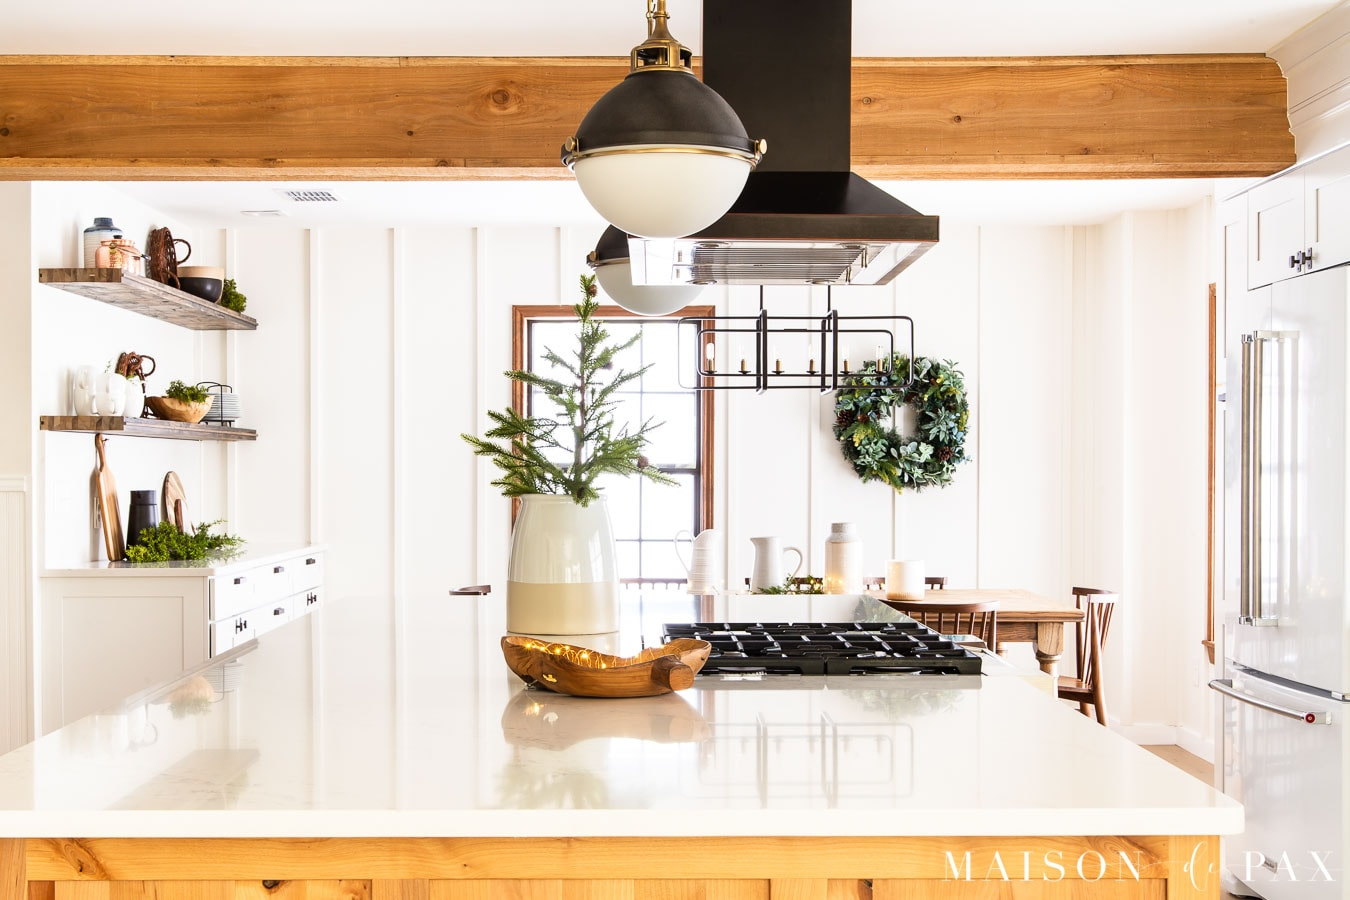 copper LED string lights in bowl on kitchen island | Maison de Pax